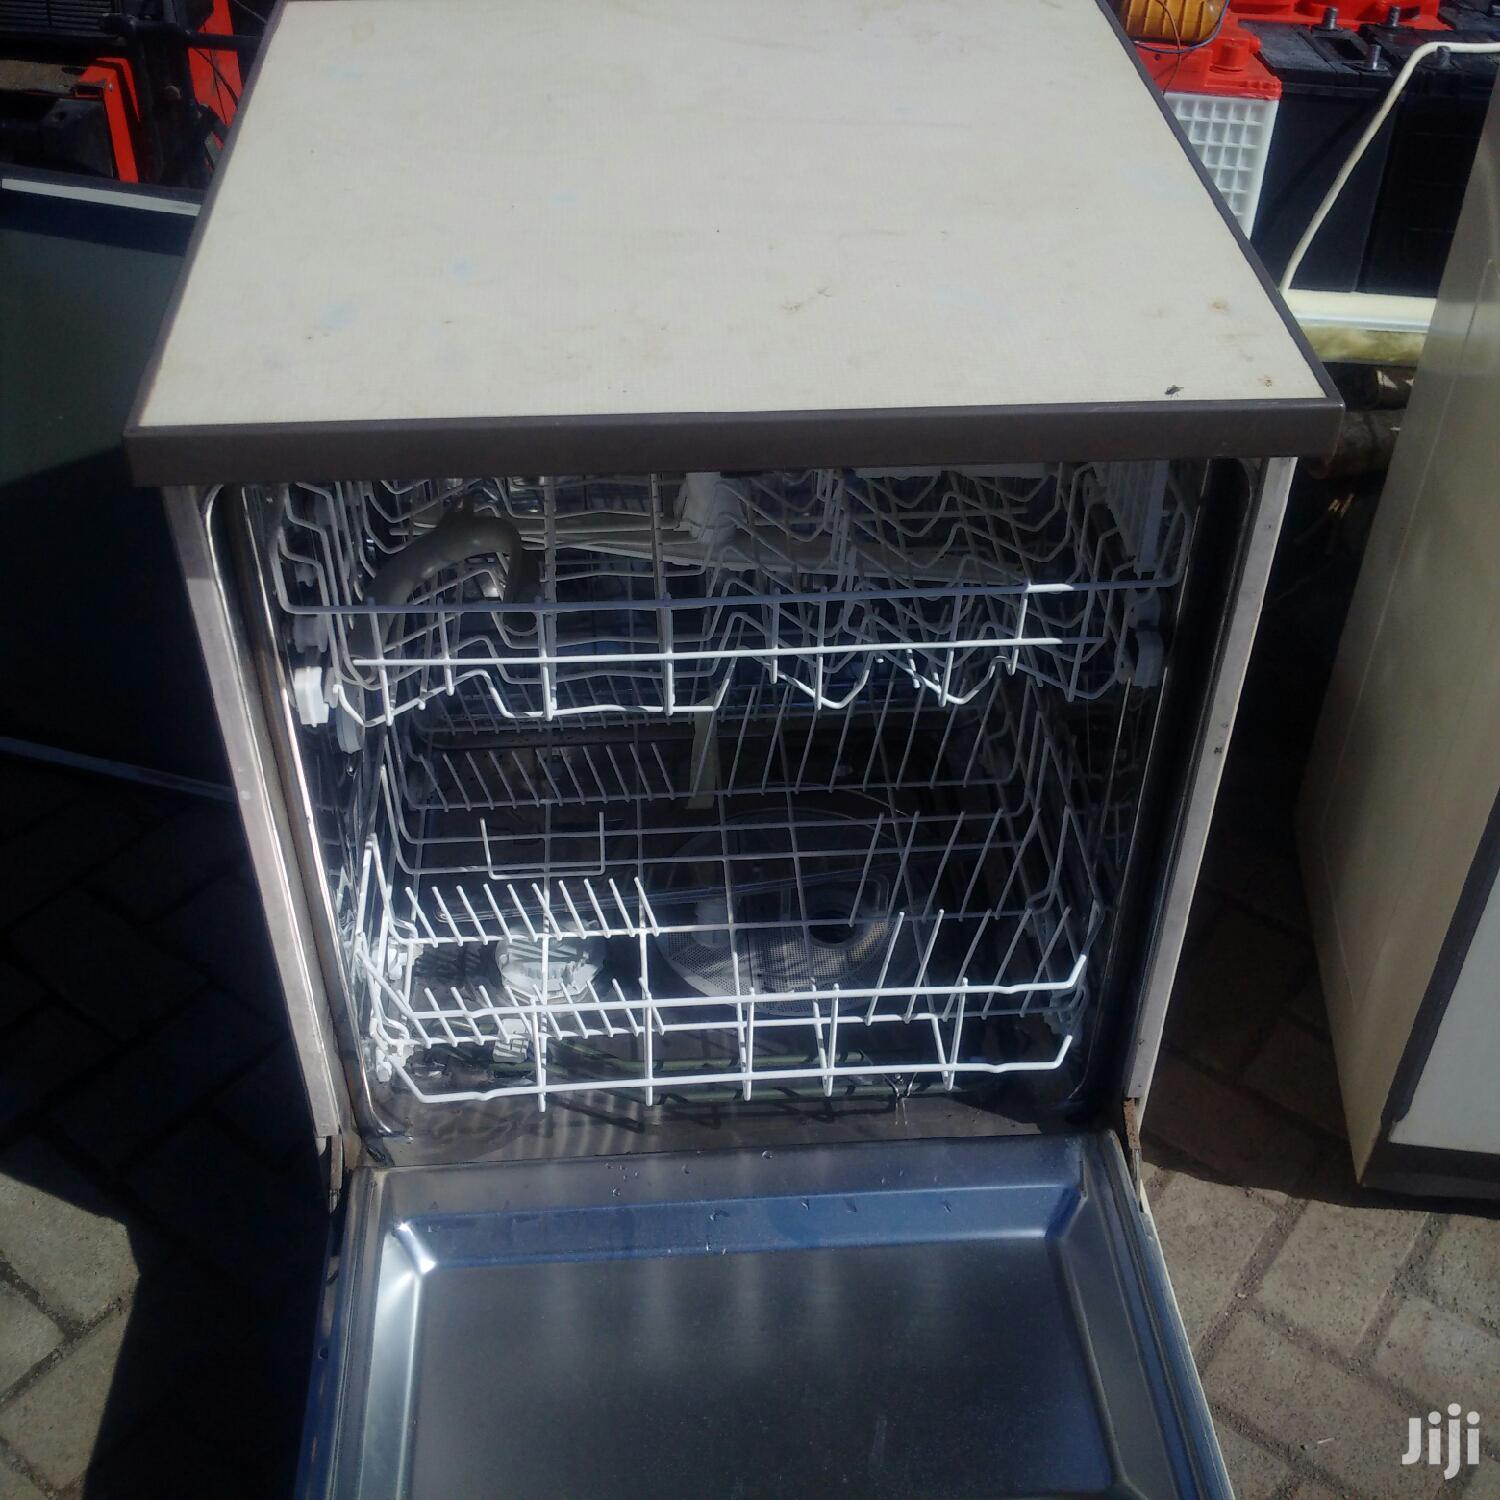 Hotpoint Super Plus 7821 Dishwasher